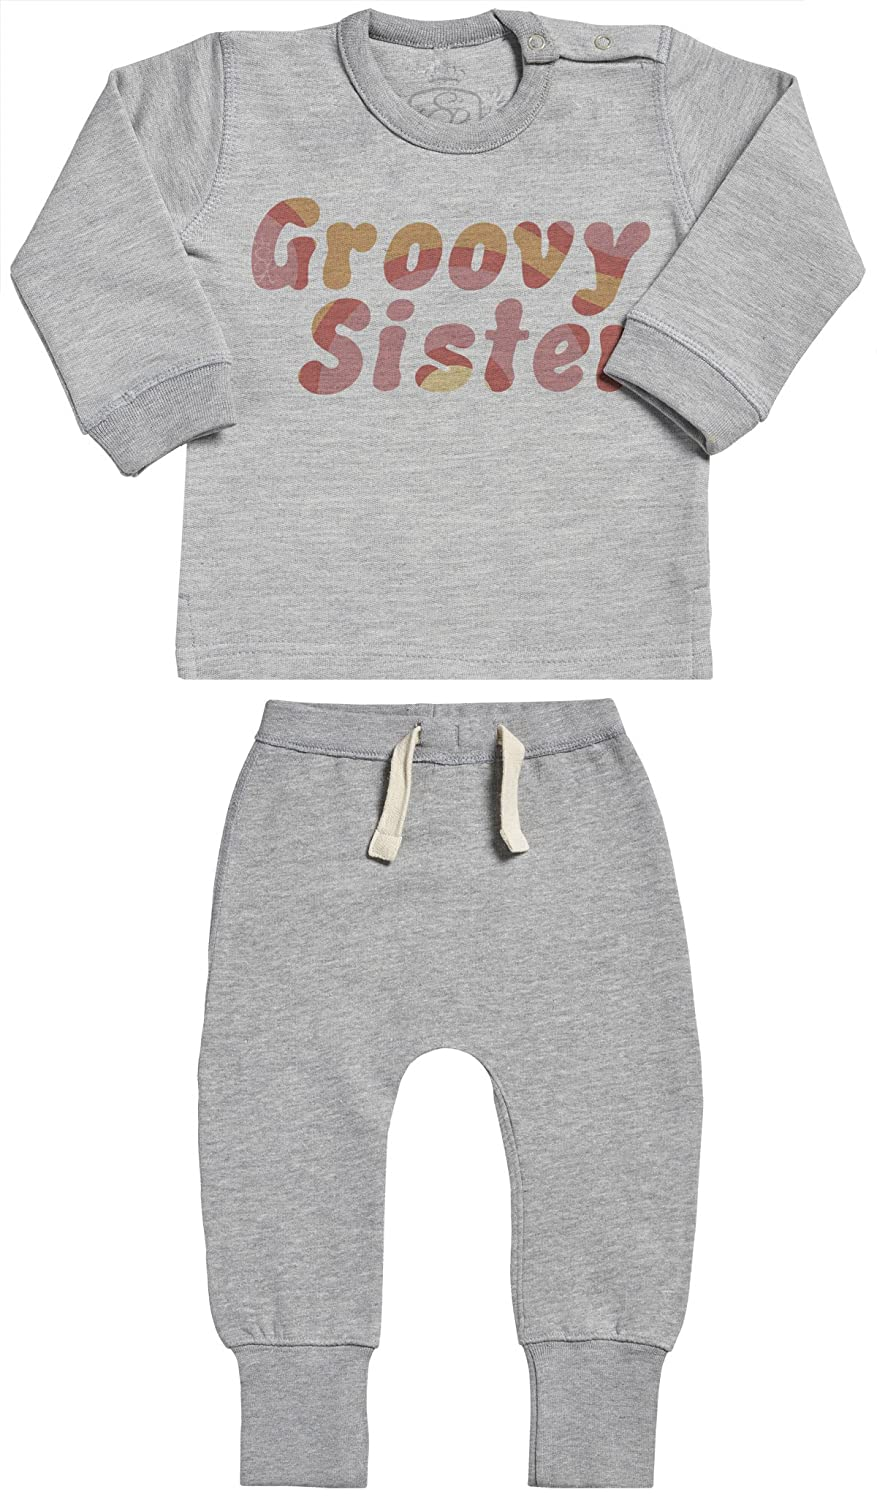 SR Baby Sweater /& Baby Joggers Baby Clothing Outfit Baby Gift Set Groovy Sister Baby Outfit